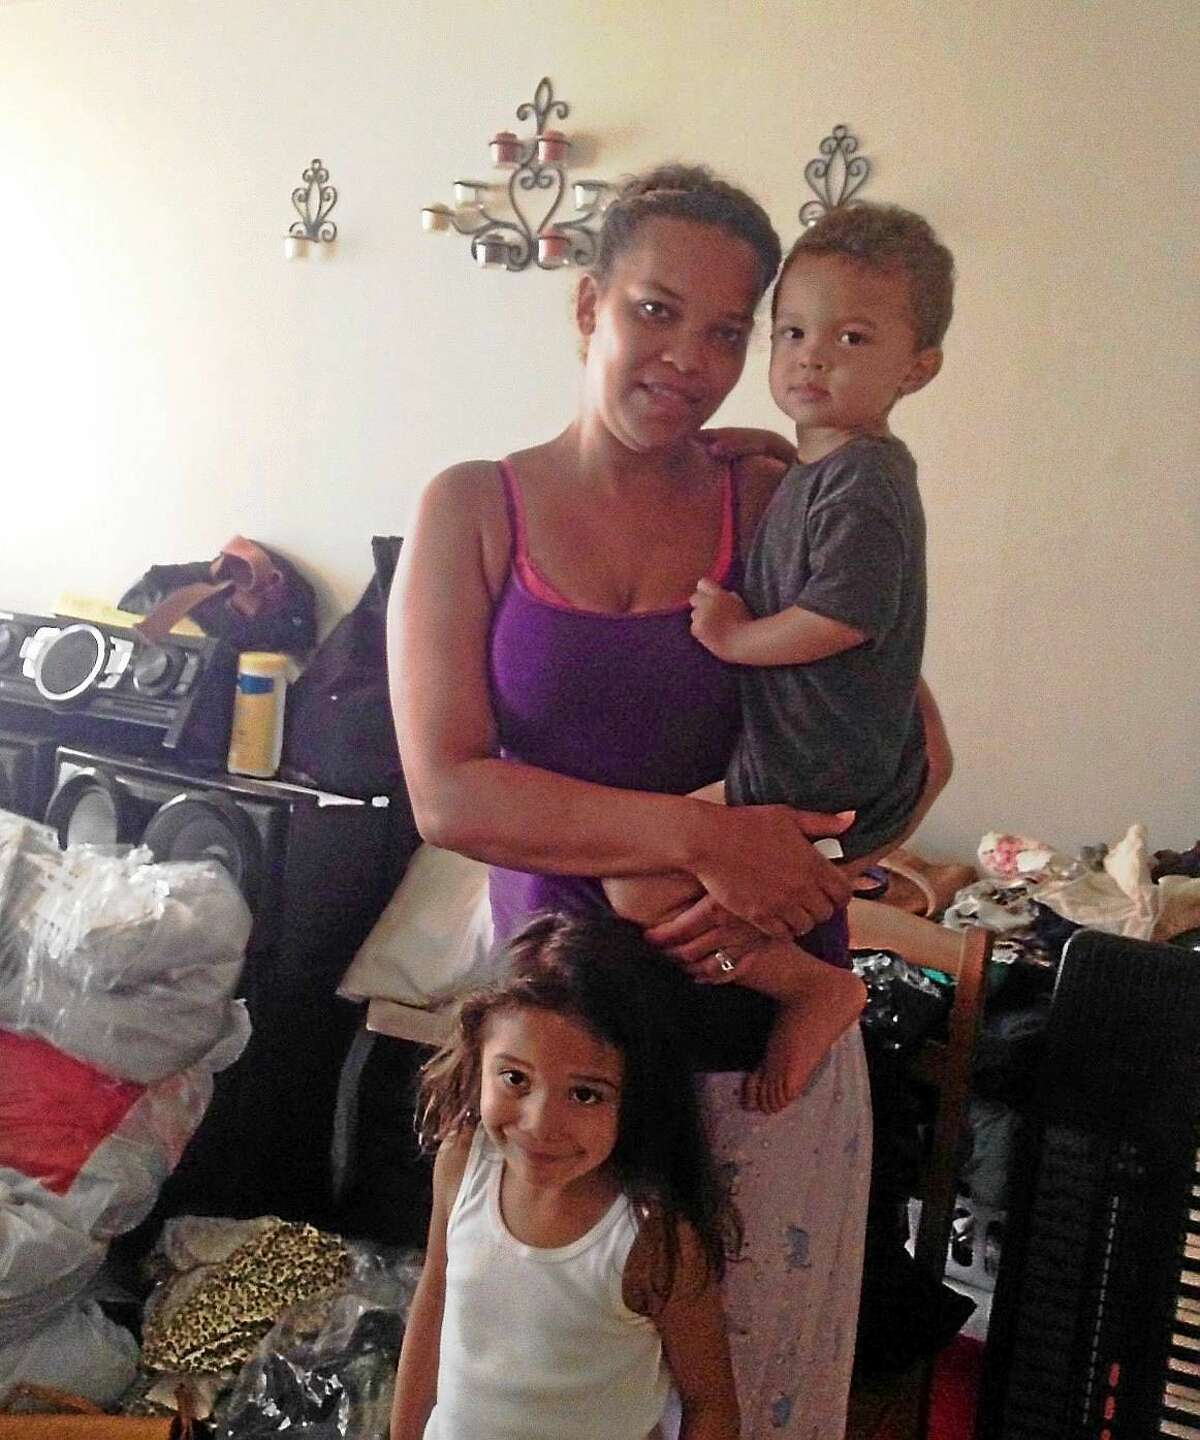 Yomaly Rivera holds her 2-year-old son, Yadier. Her 4-year-old daughter is Thatiana. She wants to be moved out as their apartment is repaired at 97A Columbus Ave. in New Haven.